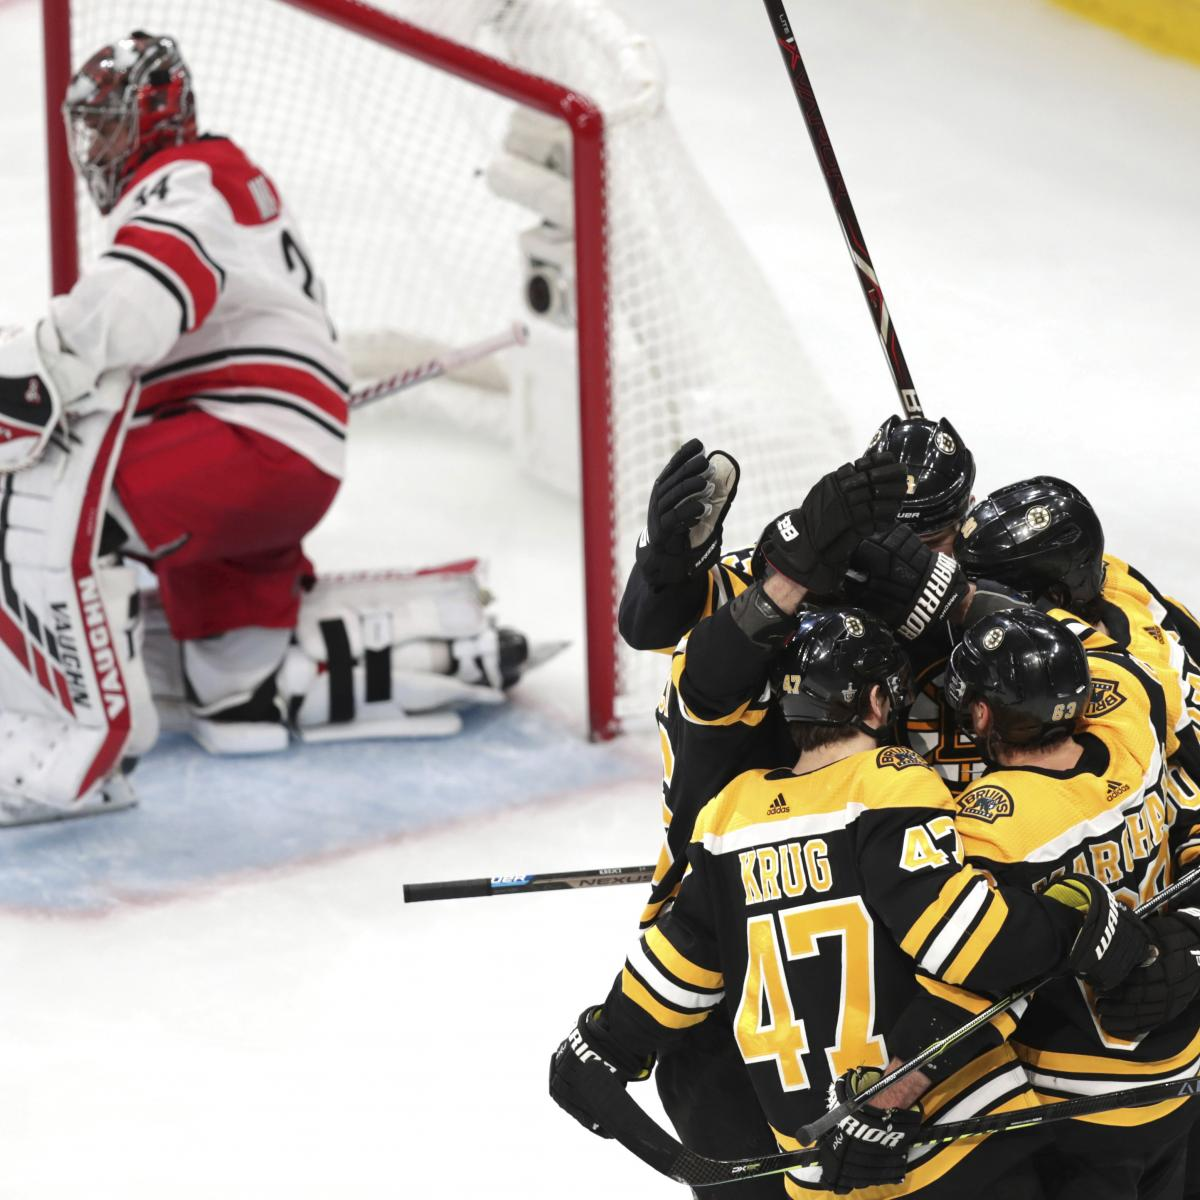 NHL Playoffs 2019: Full Conference Finals Schedule And